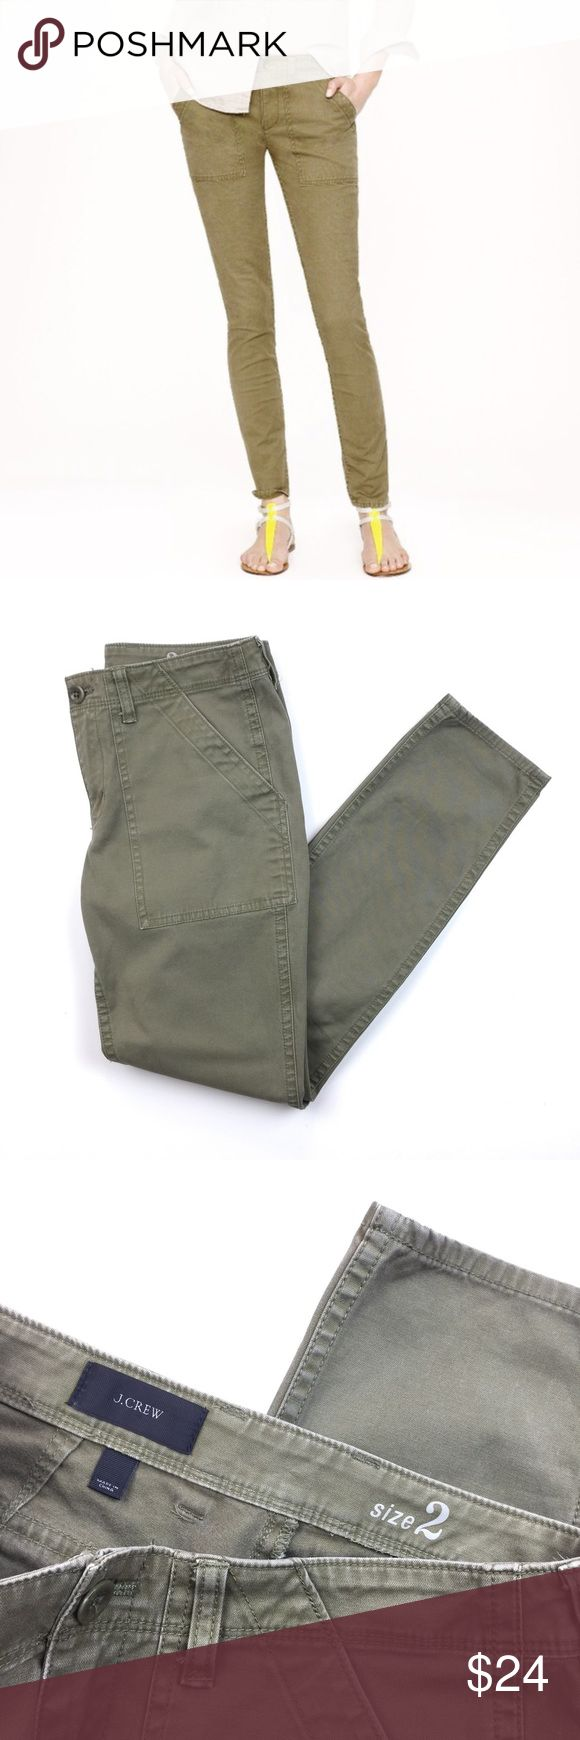 "J. Crew Olive Skinny Utility Chino Pants // 4 Great pair of J. Crew fatigue inspired skinny chino pants. Very good condition. 98% cotton 2% spandex. Size 2. 28 1/2"" inseam. 15"" waist flat. J. Crew Pants Skinny"